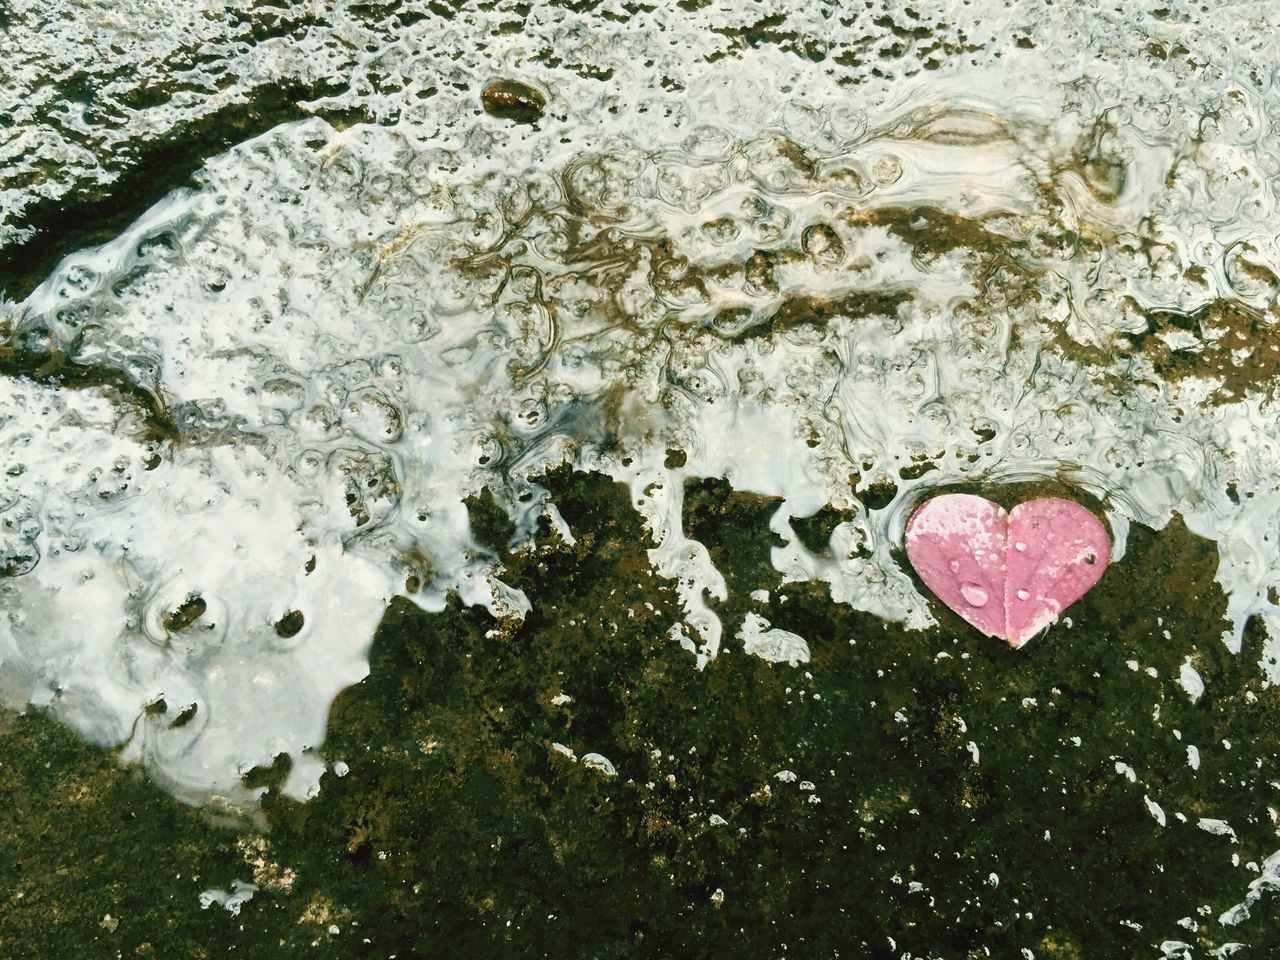 water, heart shape, no people, nature, day, outdoors, close-up, beauty in nature